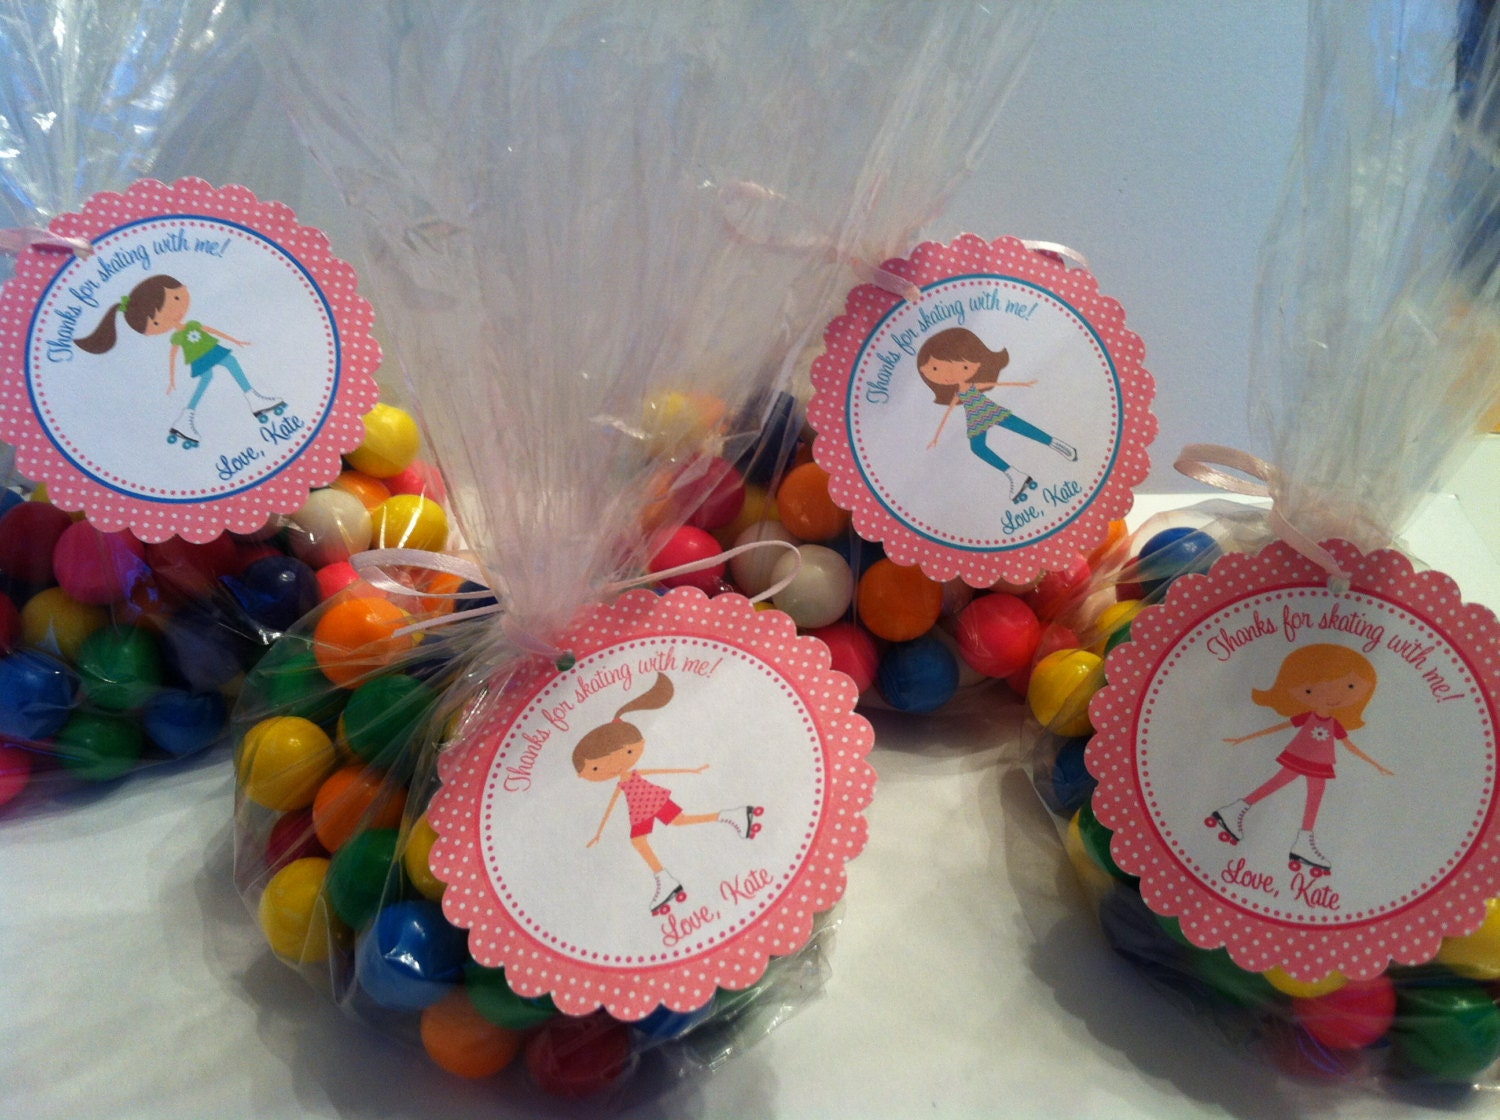 Roller skating party favors -